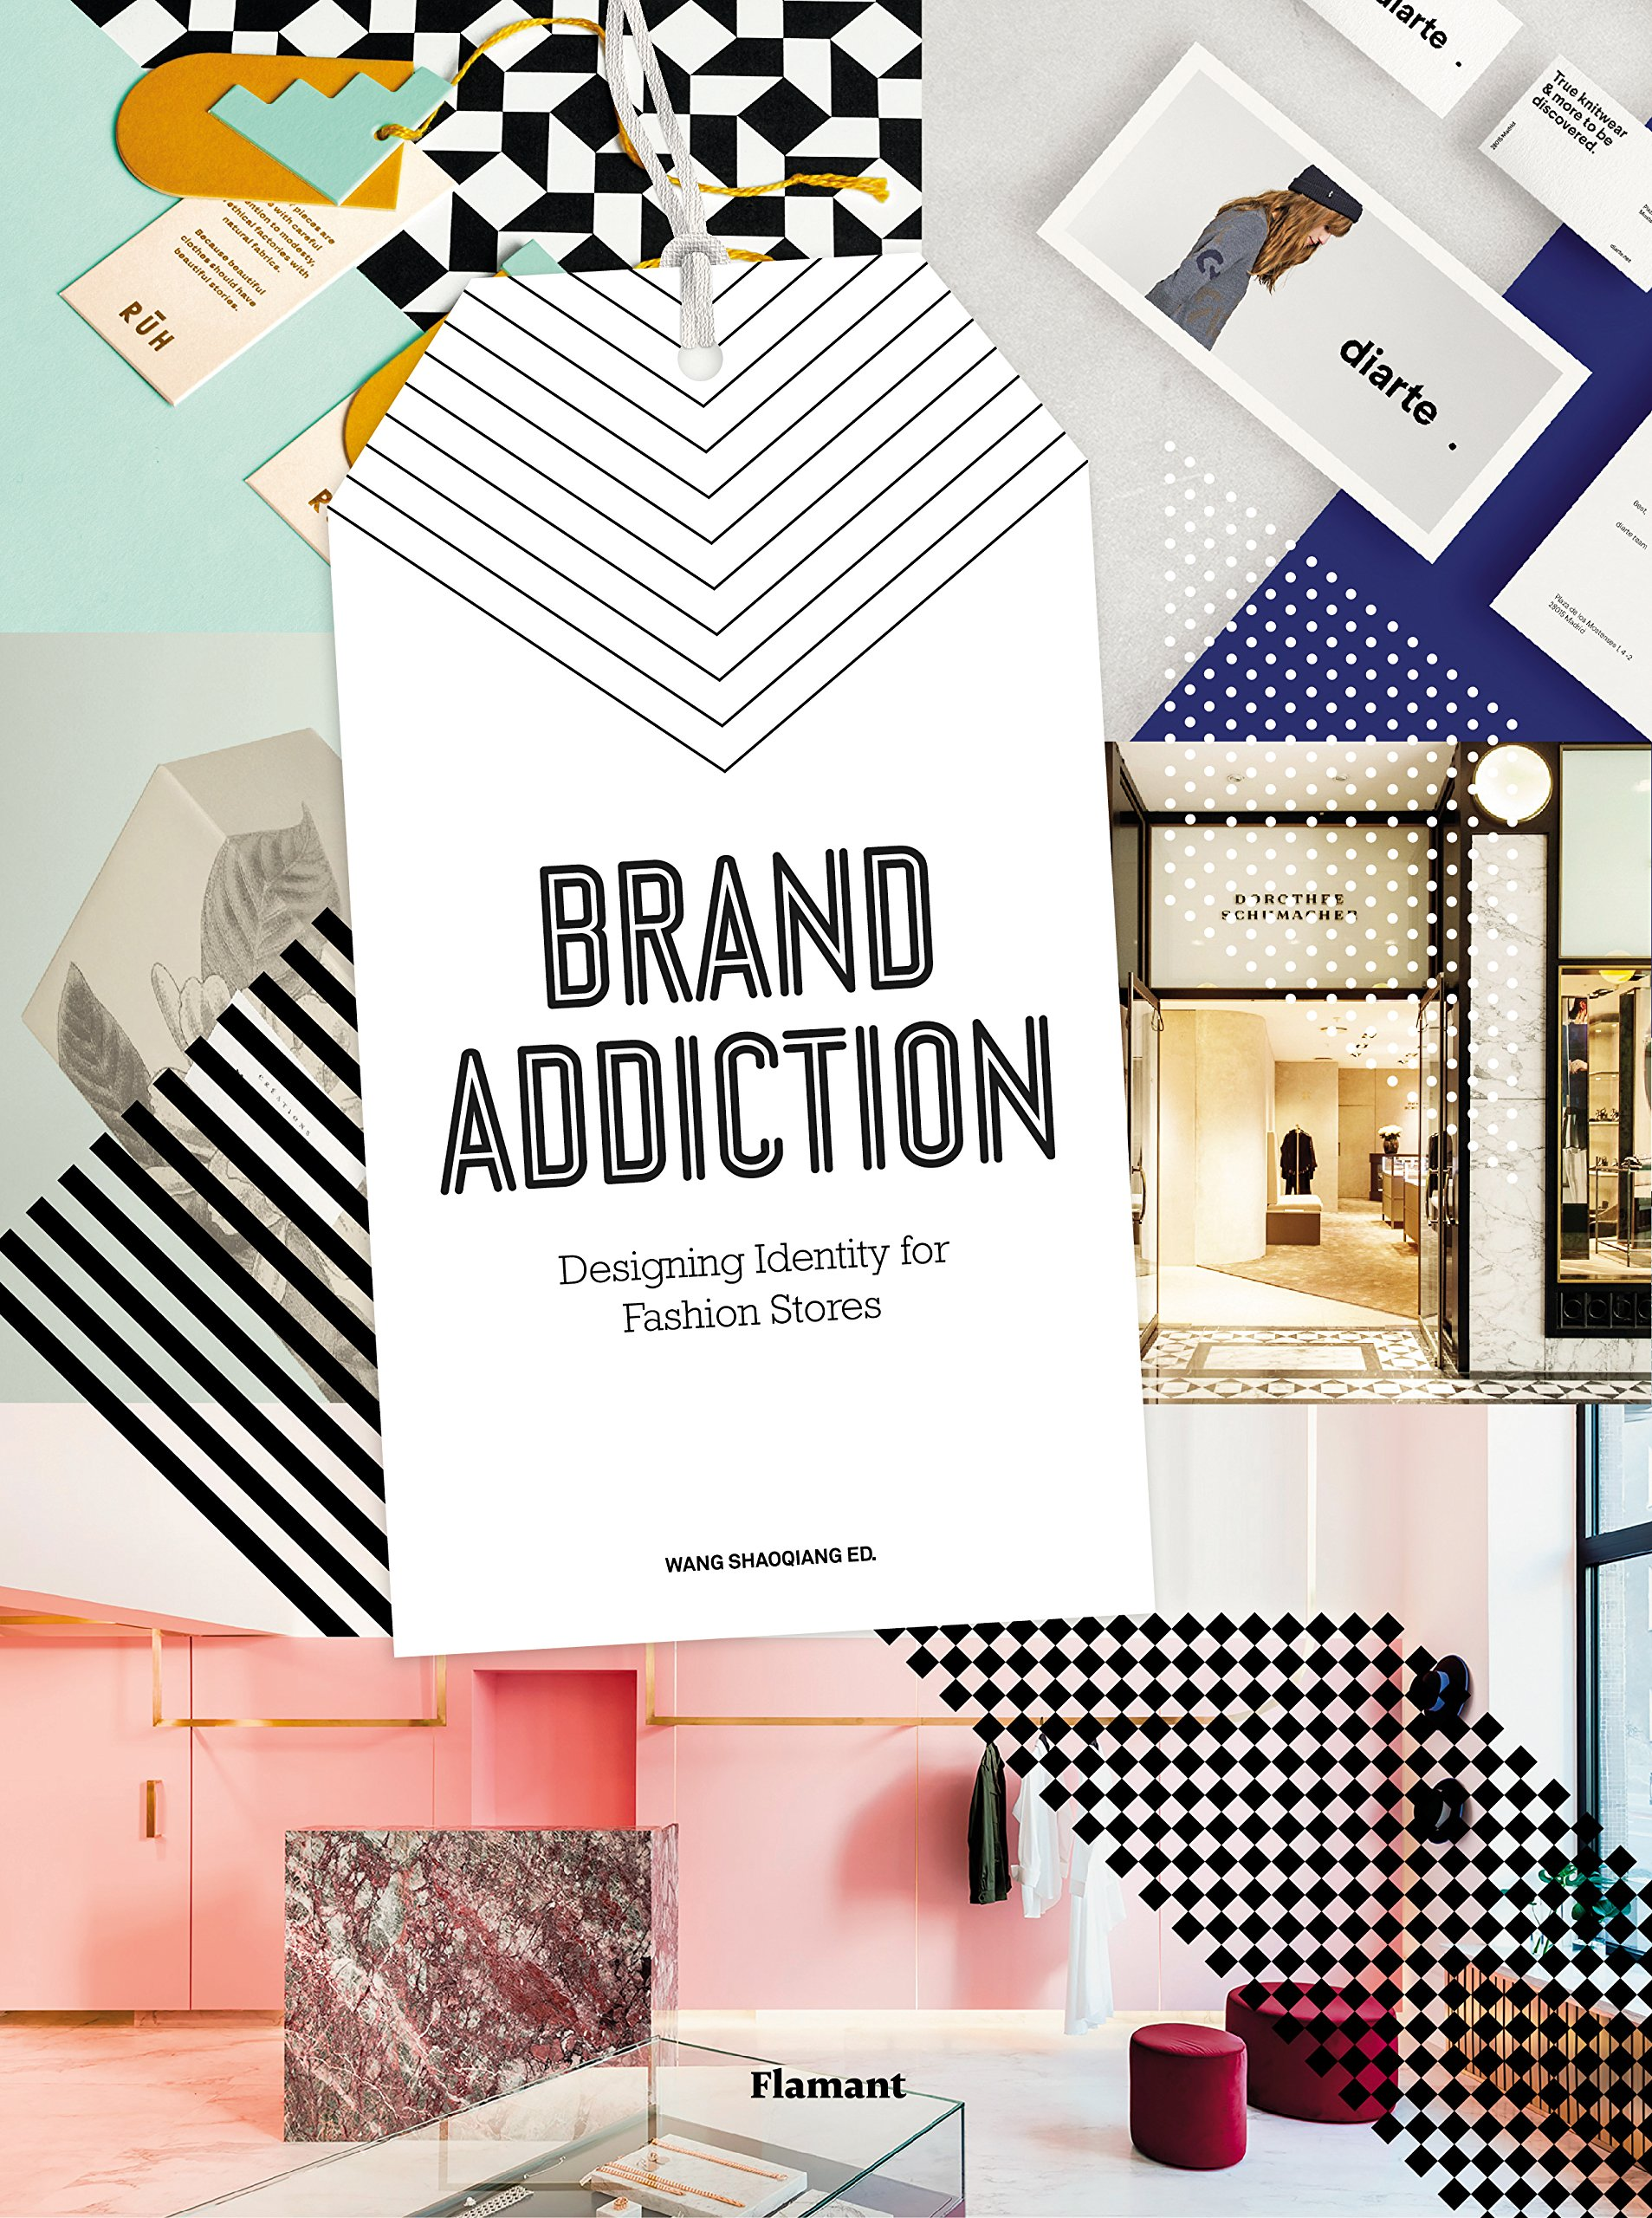 Brand Addiction: Designing Identity for Fashion Stores